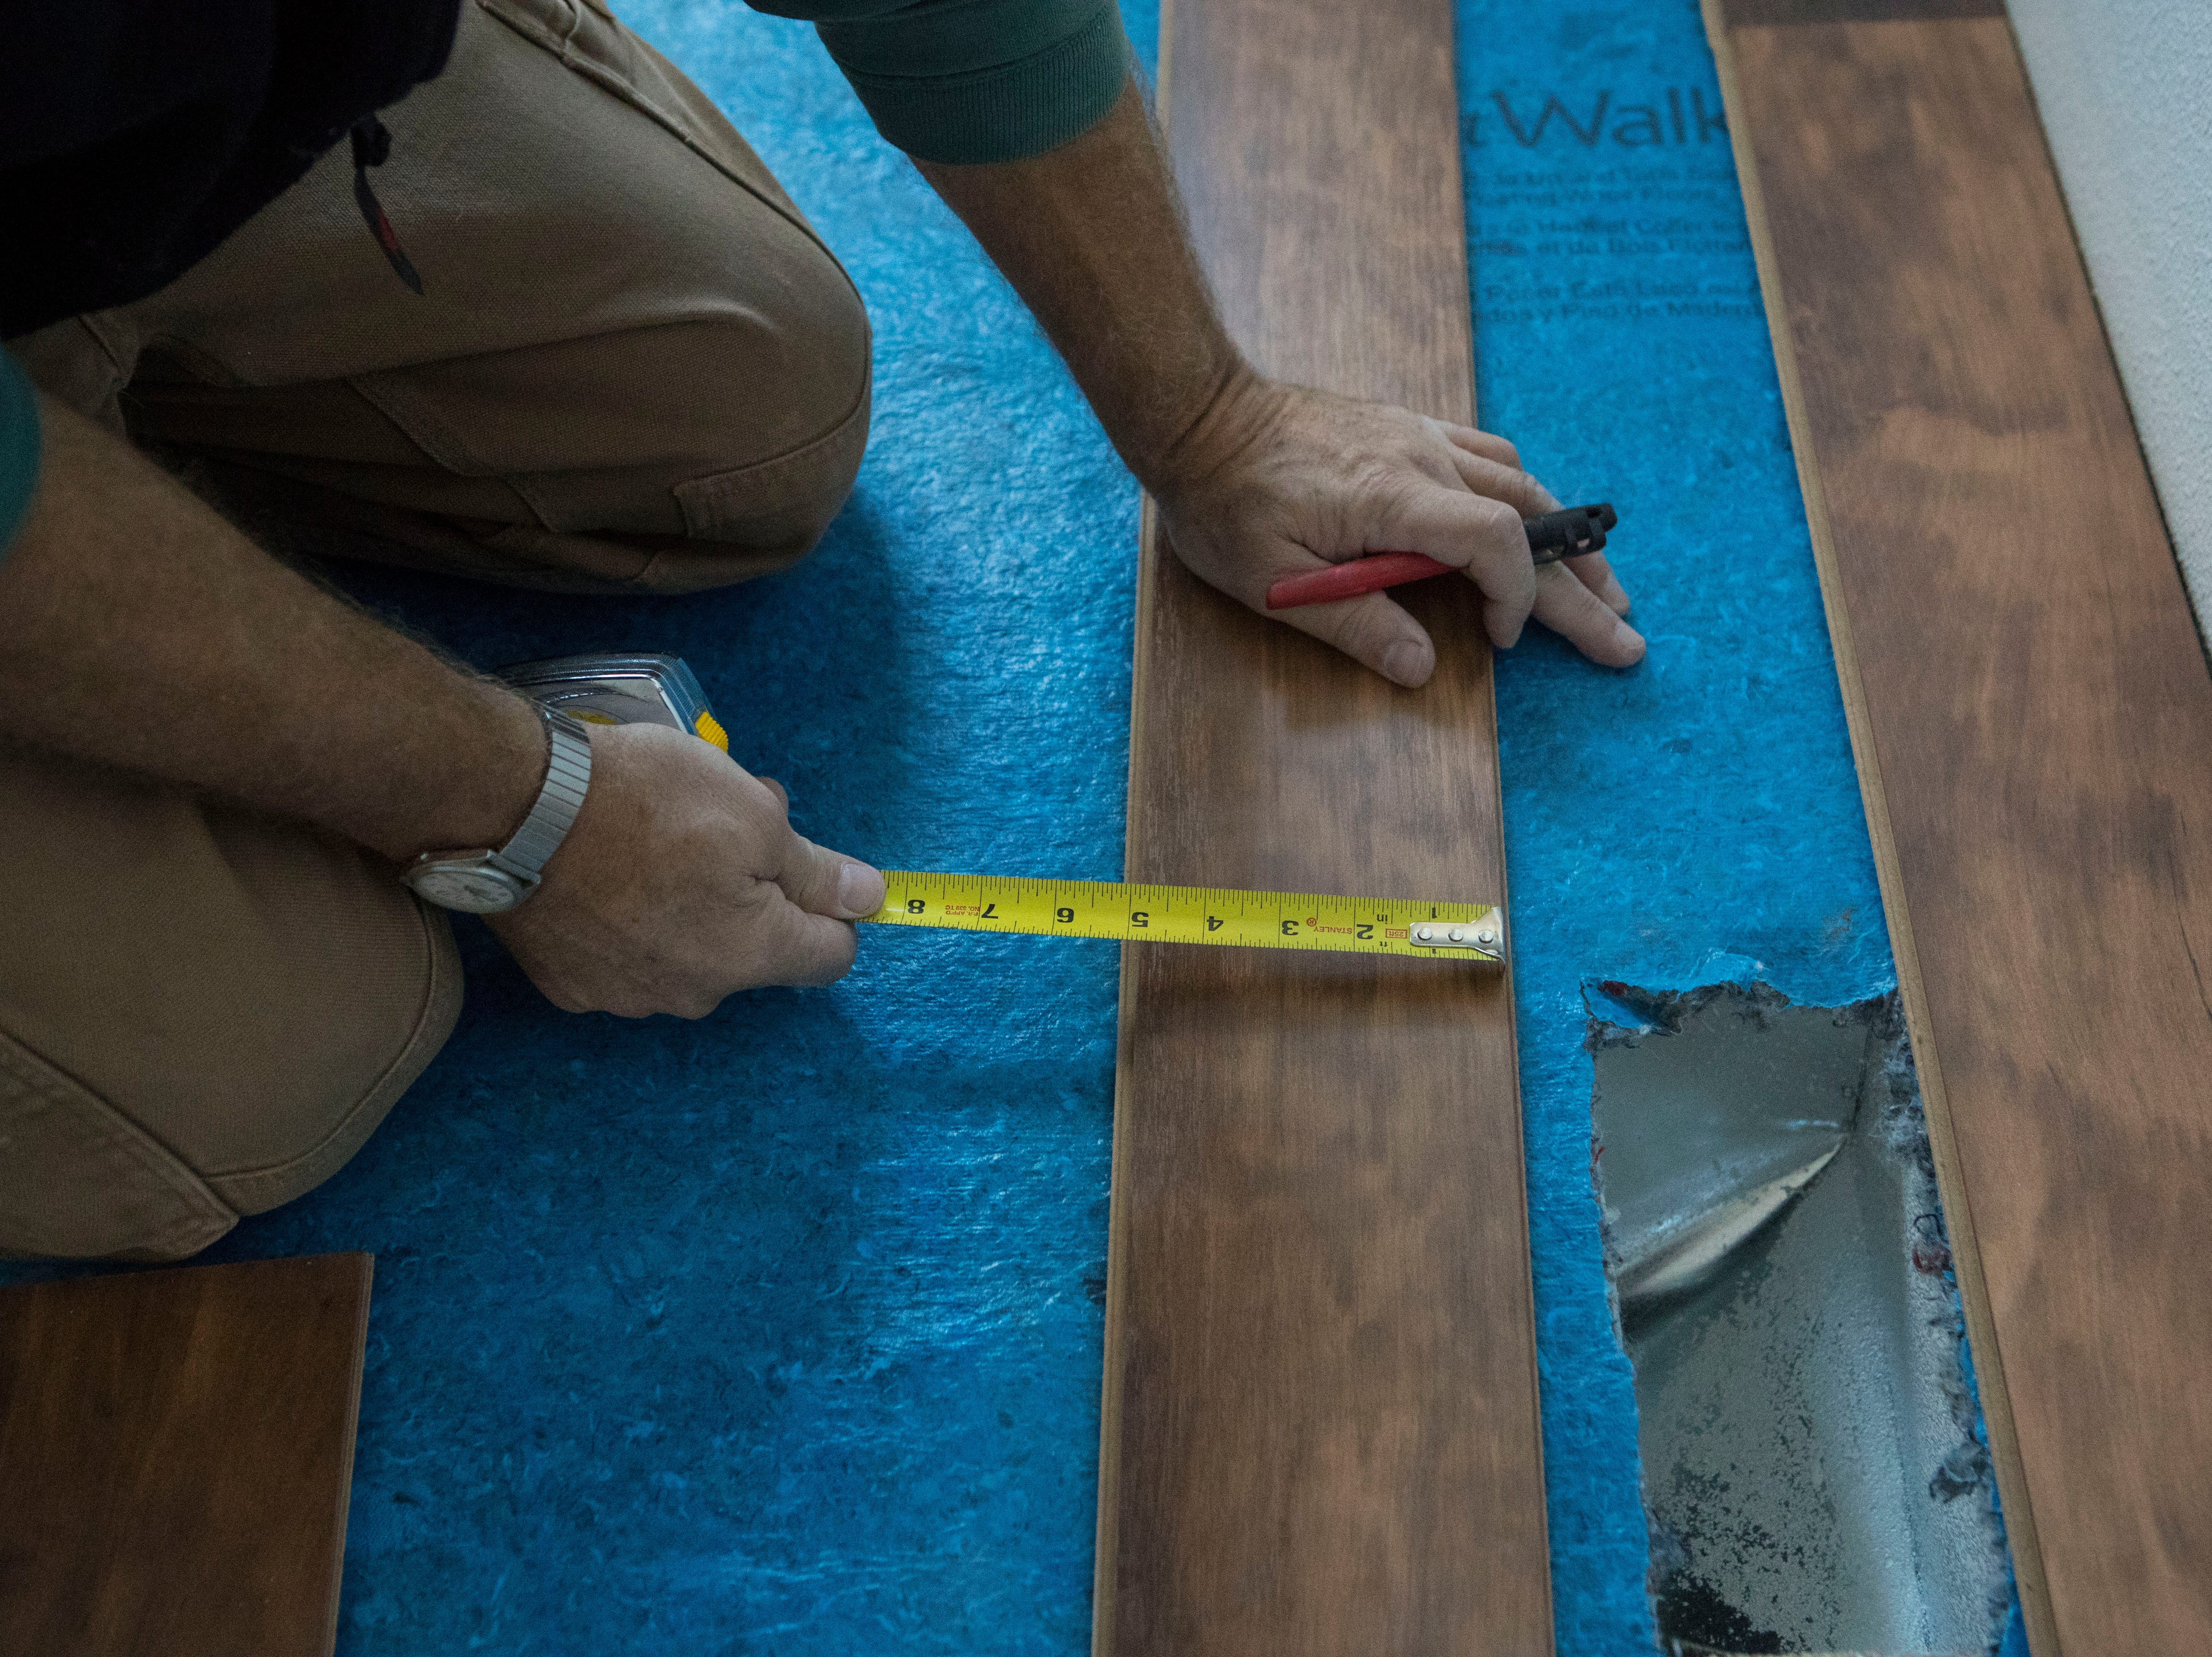 John Homstad, volunteer for Habitat for Humanity, works on the flooring in a house in Sioux Falls, S.D., Thursday, Nov. 15, 2018.